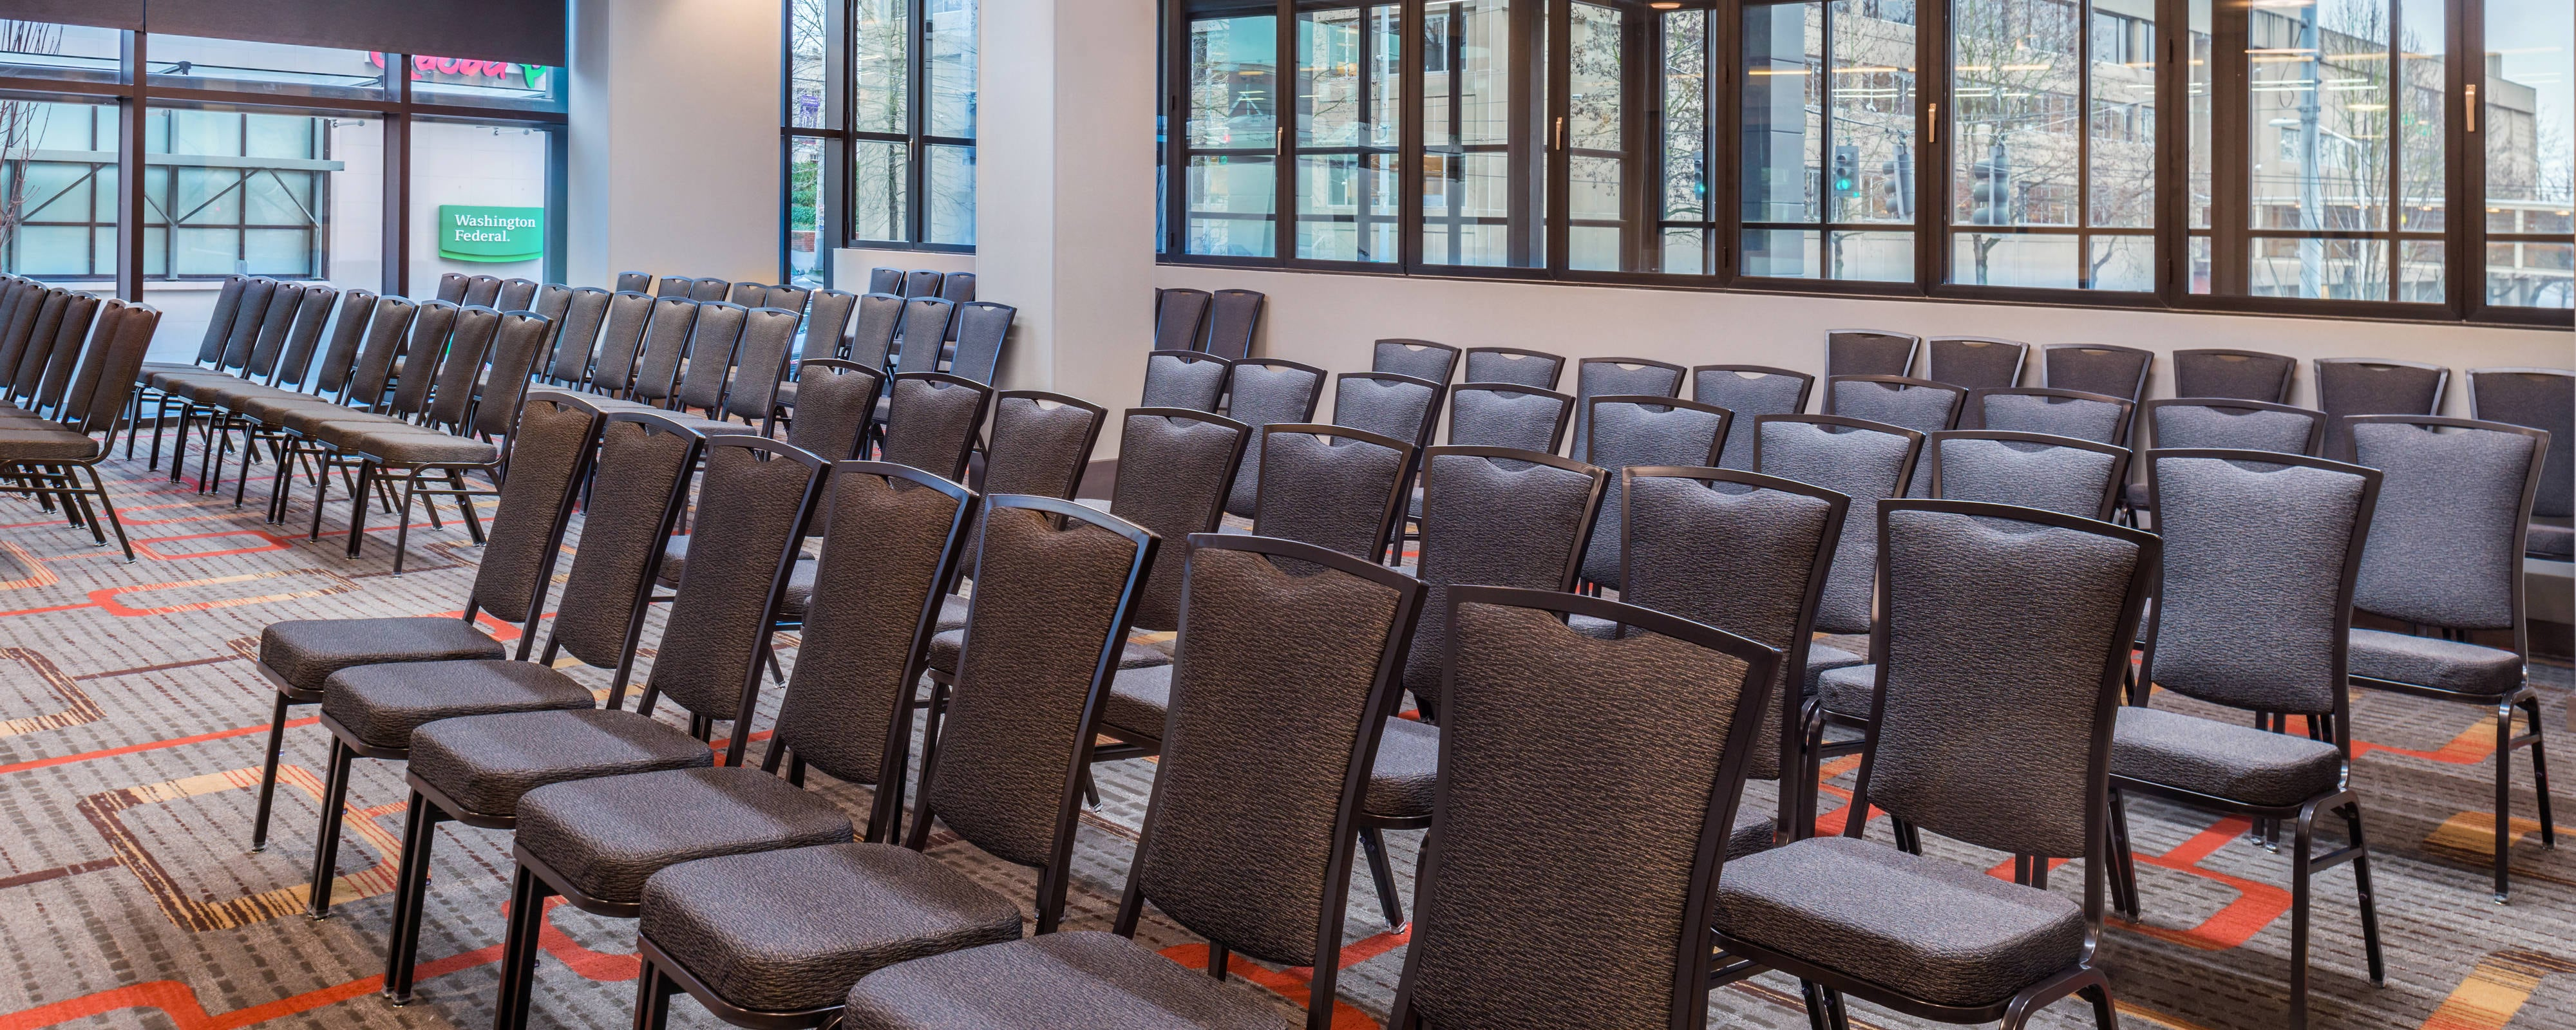 Restaurants With Meeting Rooms In Seattle